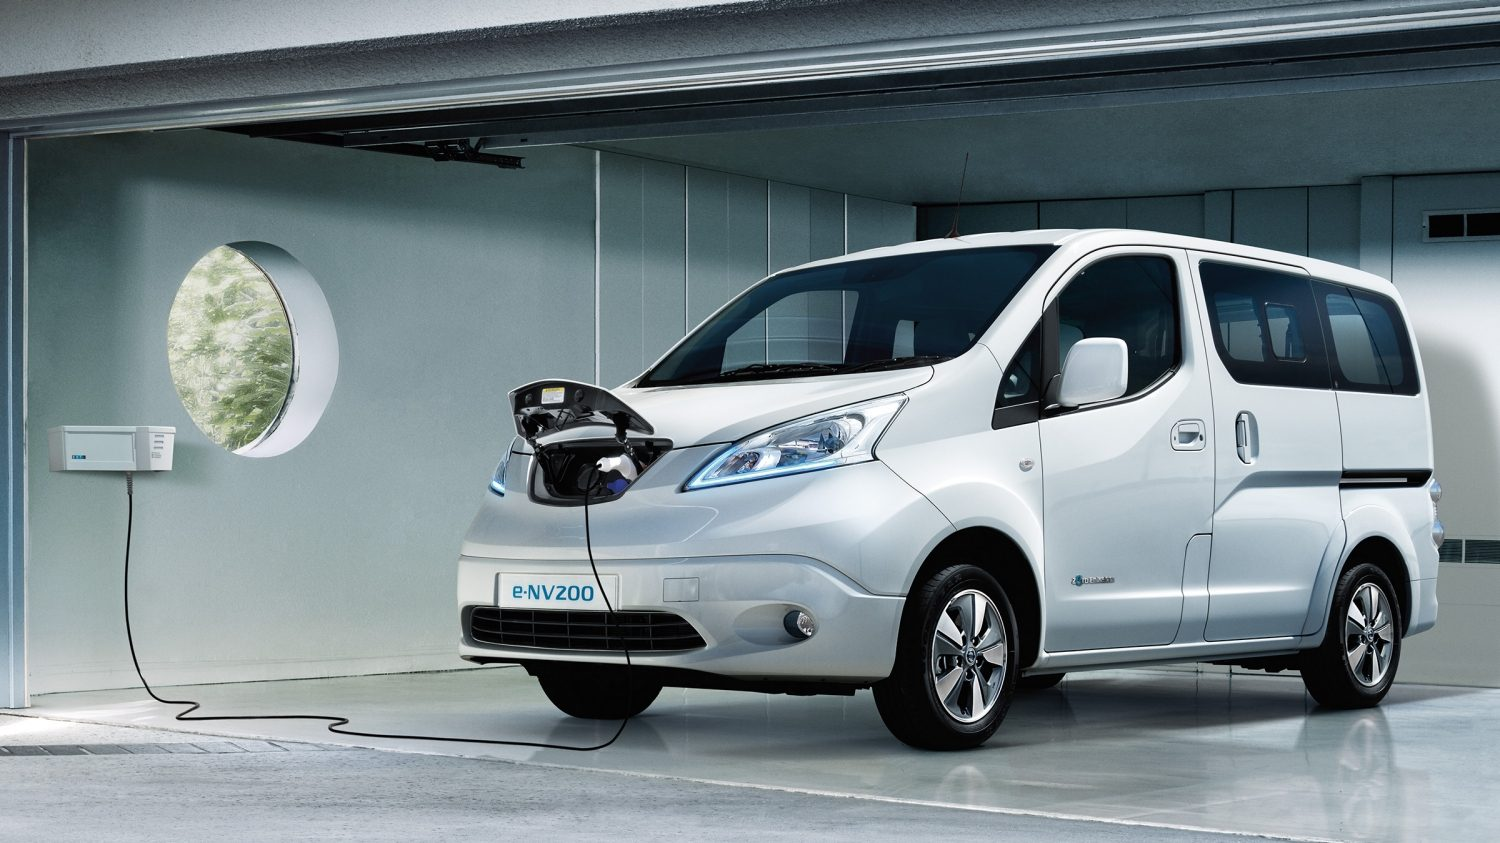 New Nissan e-NV200 COMBI charging in a private garage